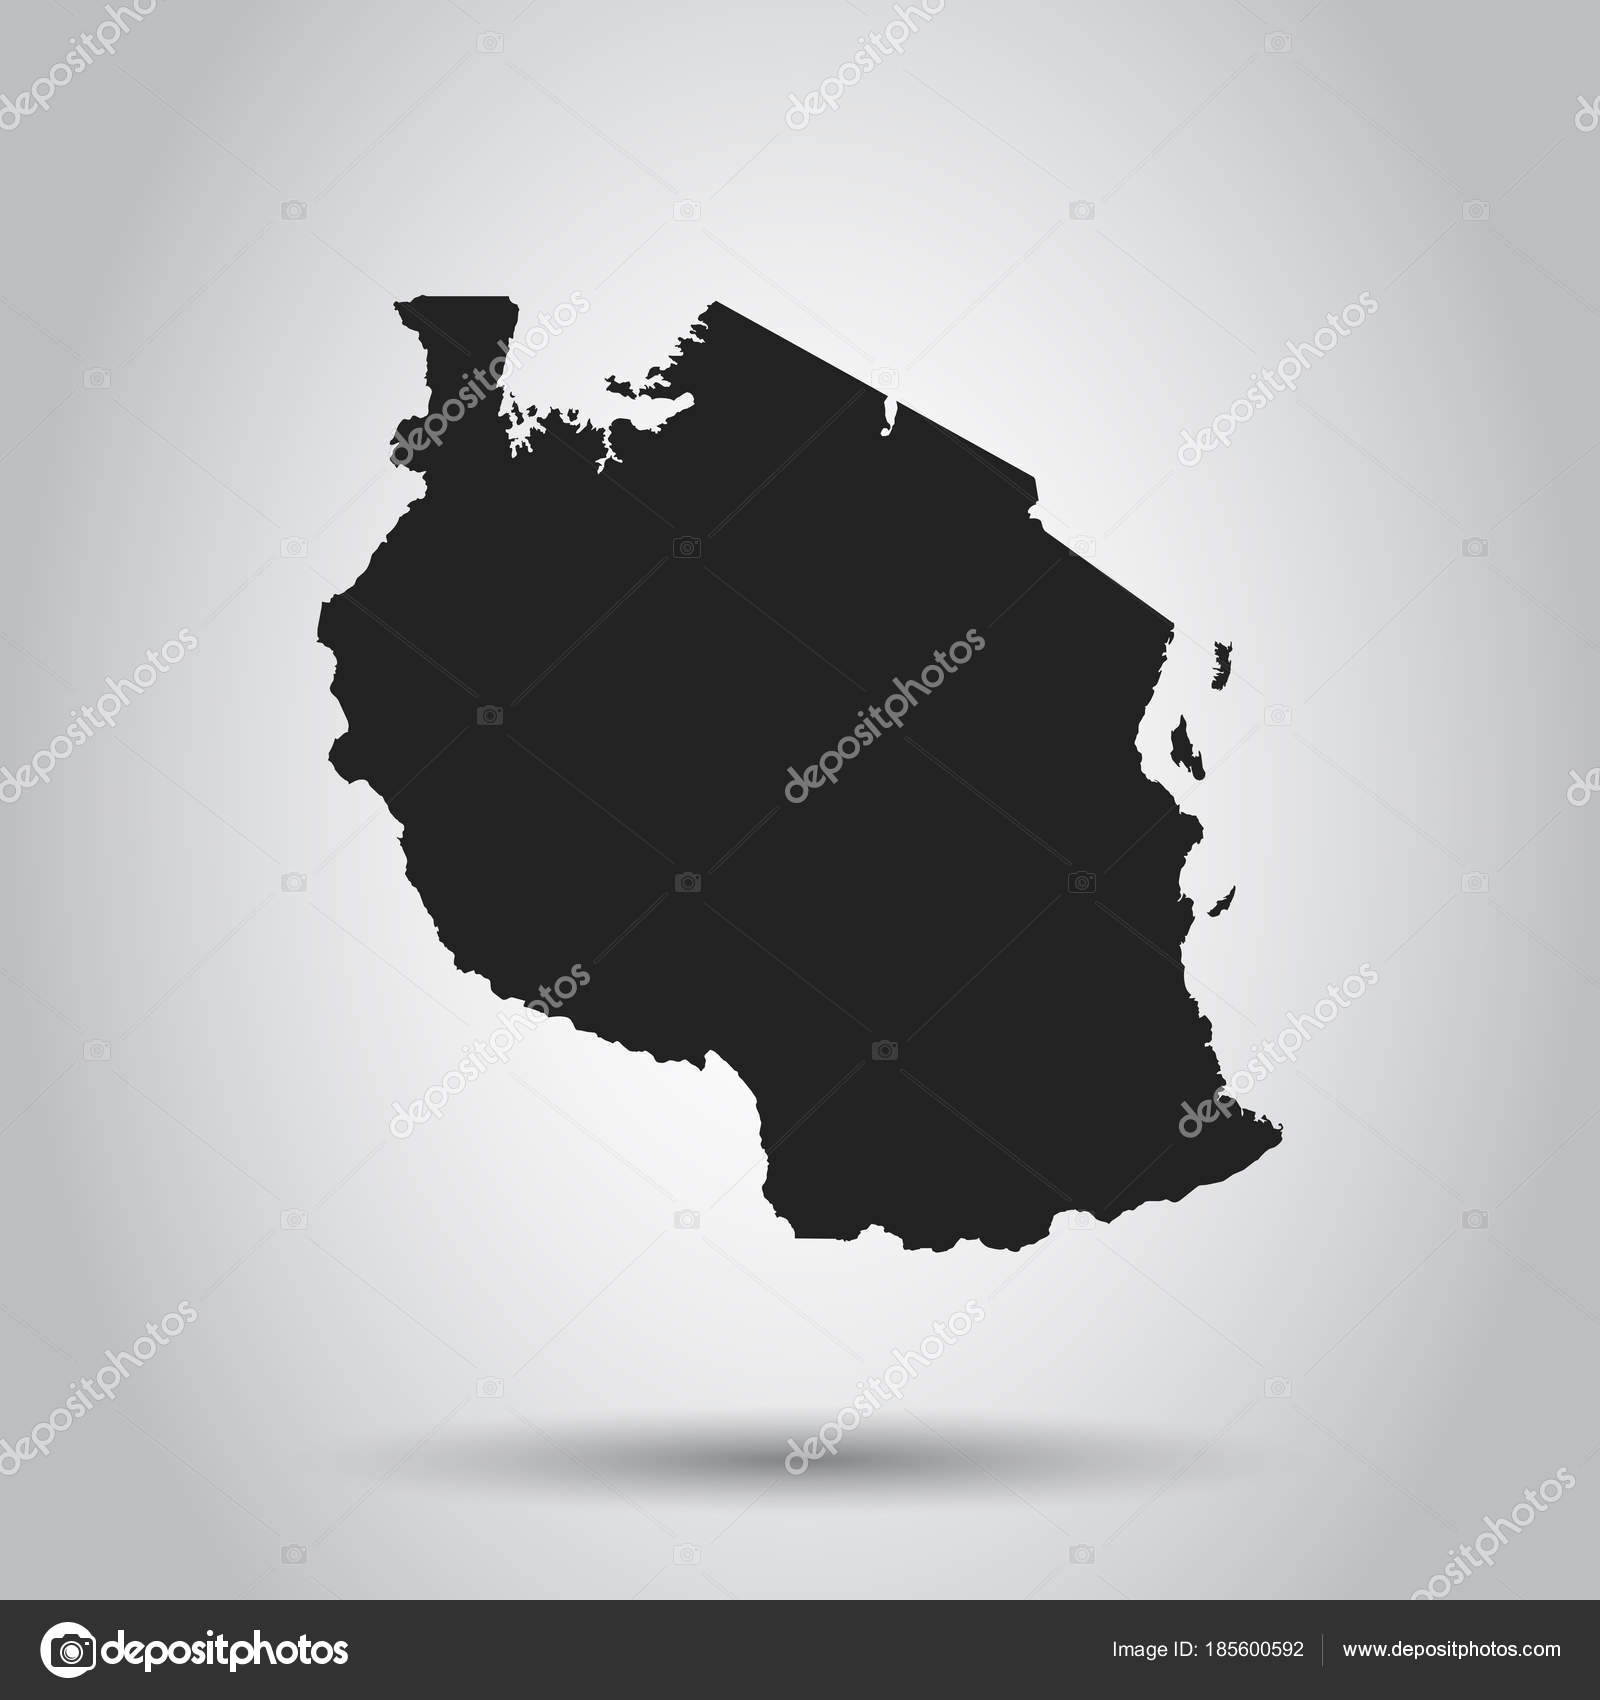 Tanzania vector map black icon on white background stock vector tanzania vector map black icon on white background stock vector gumiabroncs Image collections